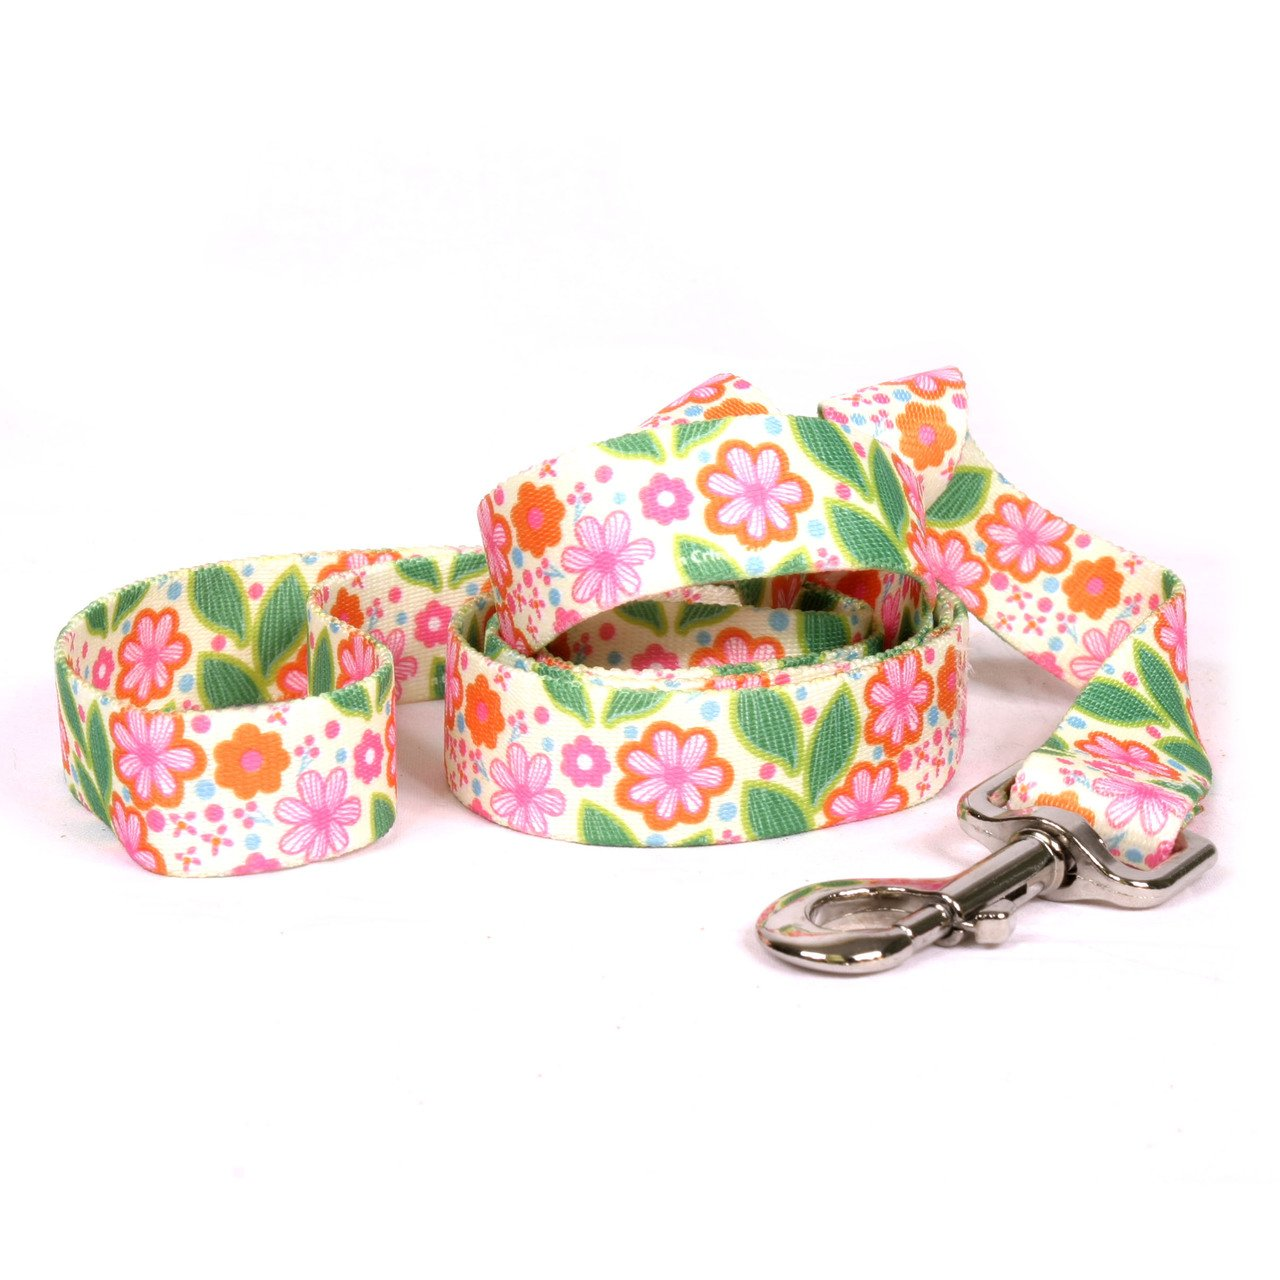 Large Yellow Dog Design Flower Patch Dog Leash 1  Wide and 5' (60 ) Long, Large